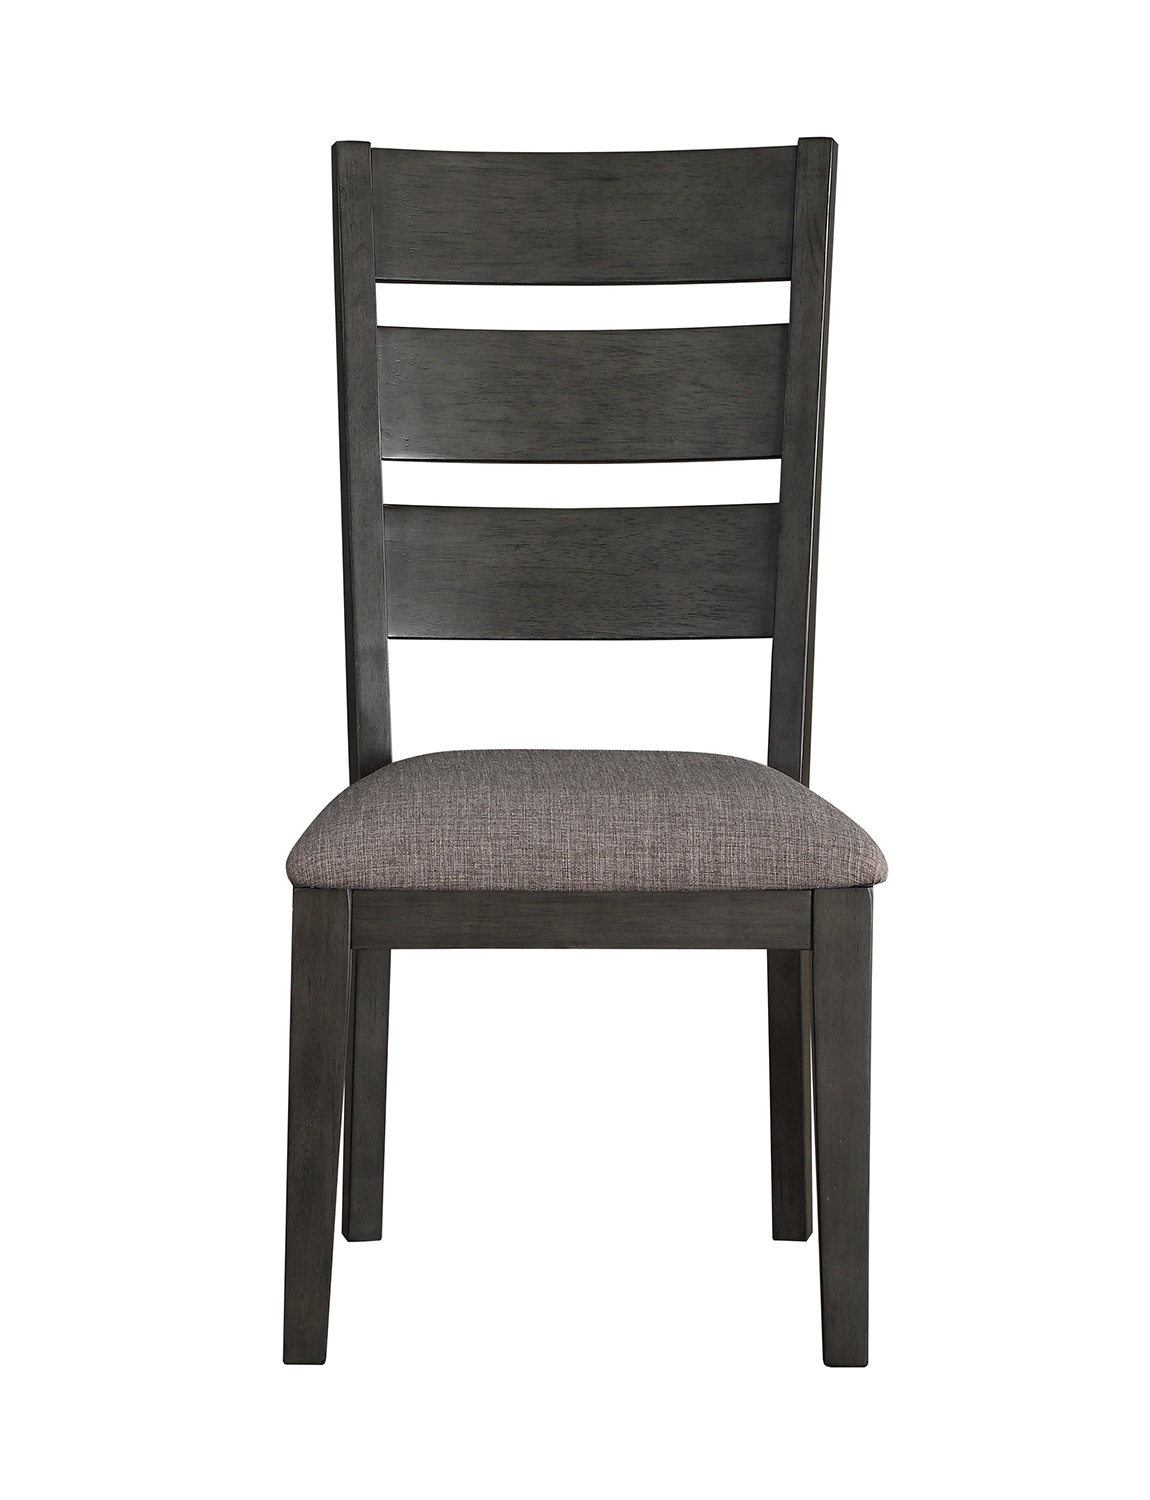 Homelegance Baresford Side Chair - Gray